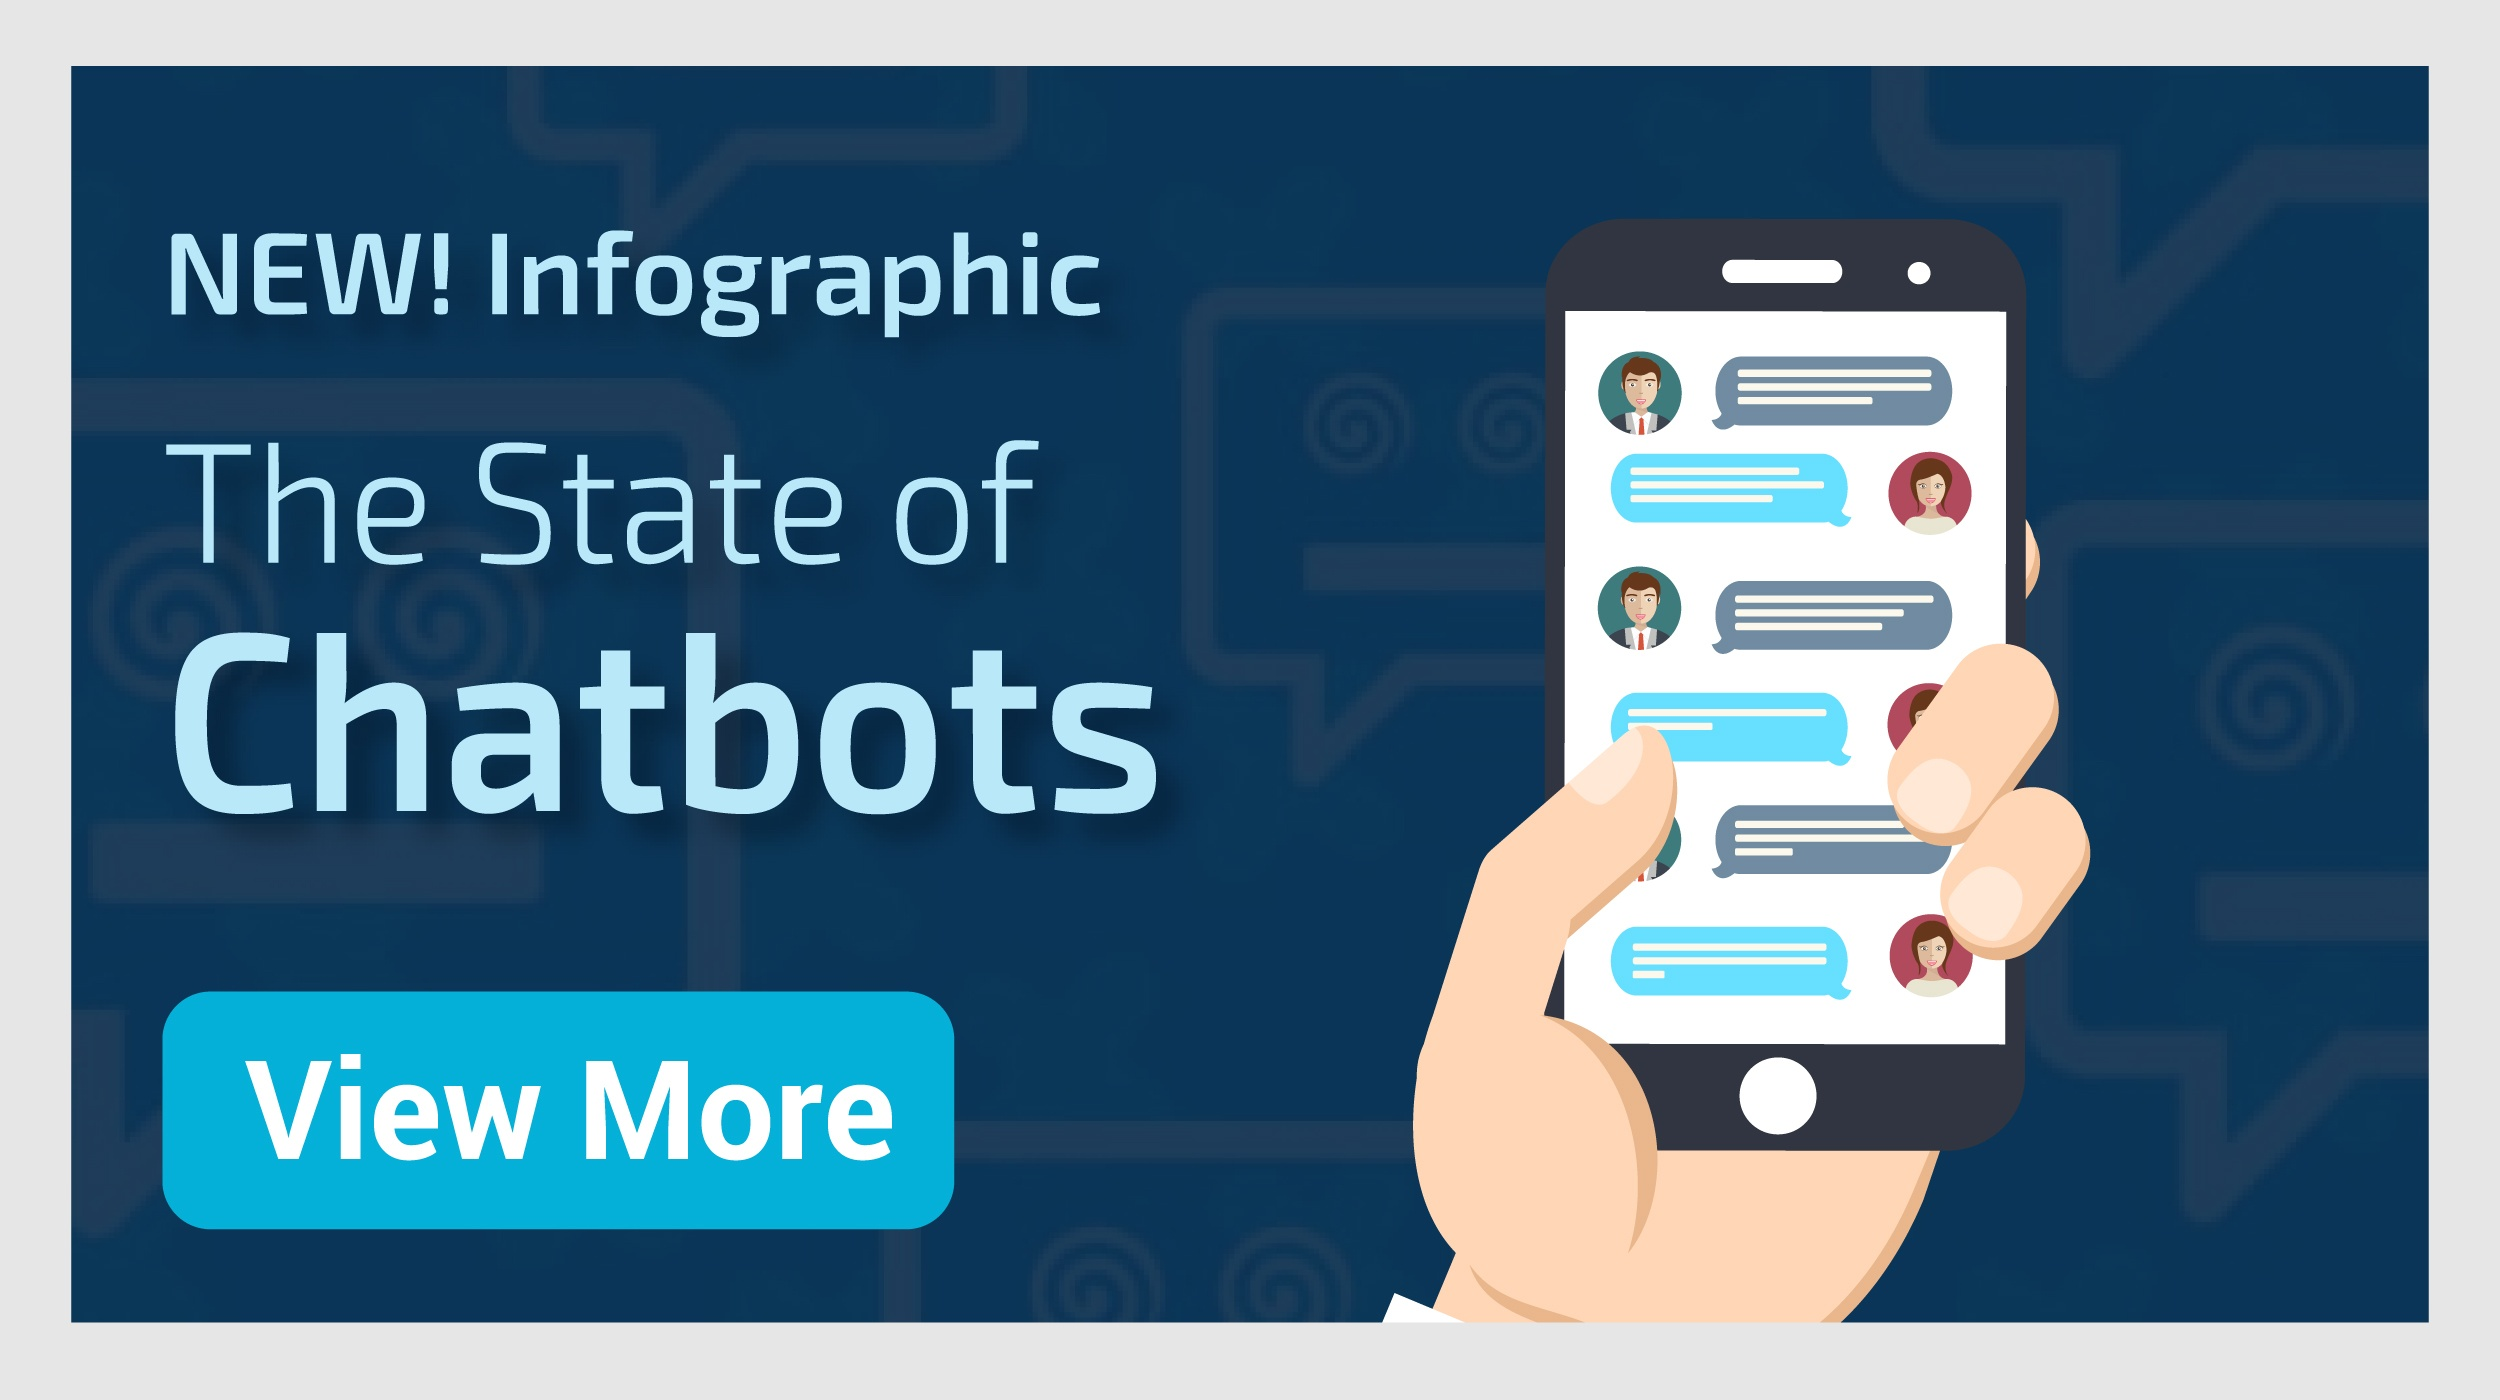 Infographic - The state of chatbots